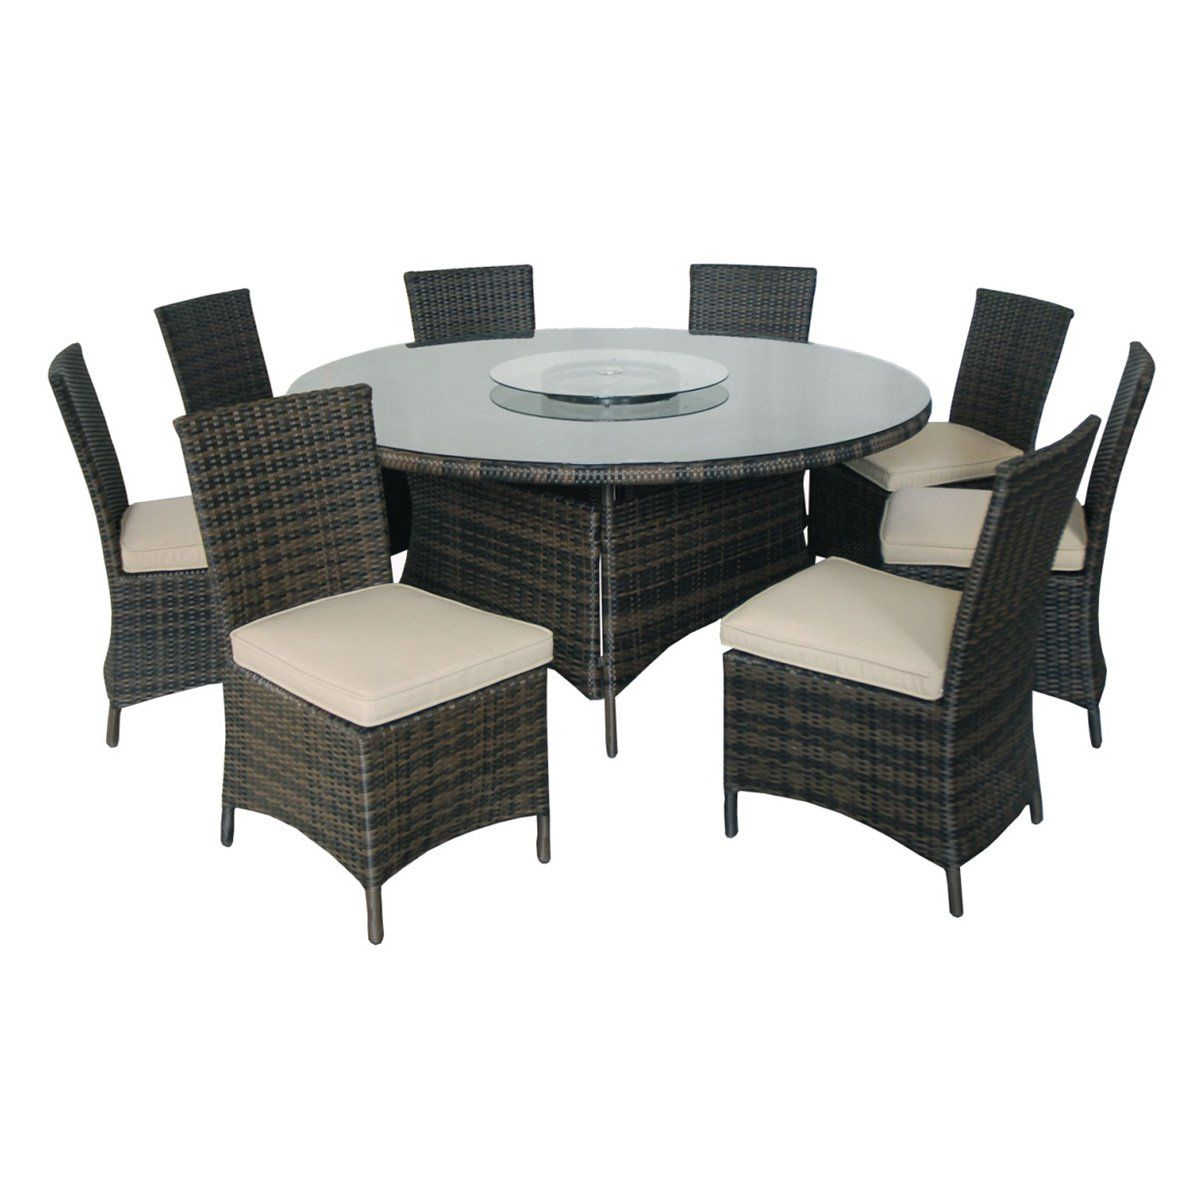 Creative Living Monte Carlo 9 Piece Round Patio Dining Set From Hayneedle Com Fire Pit Dining Set Round Dining Set Patio Dining Set